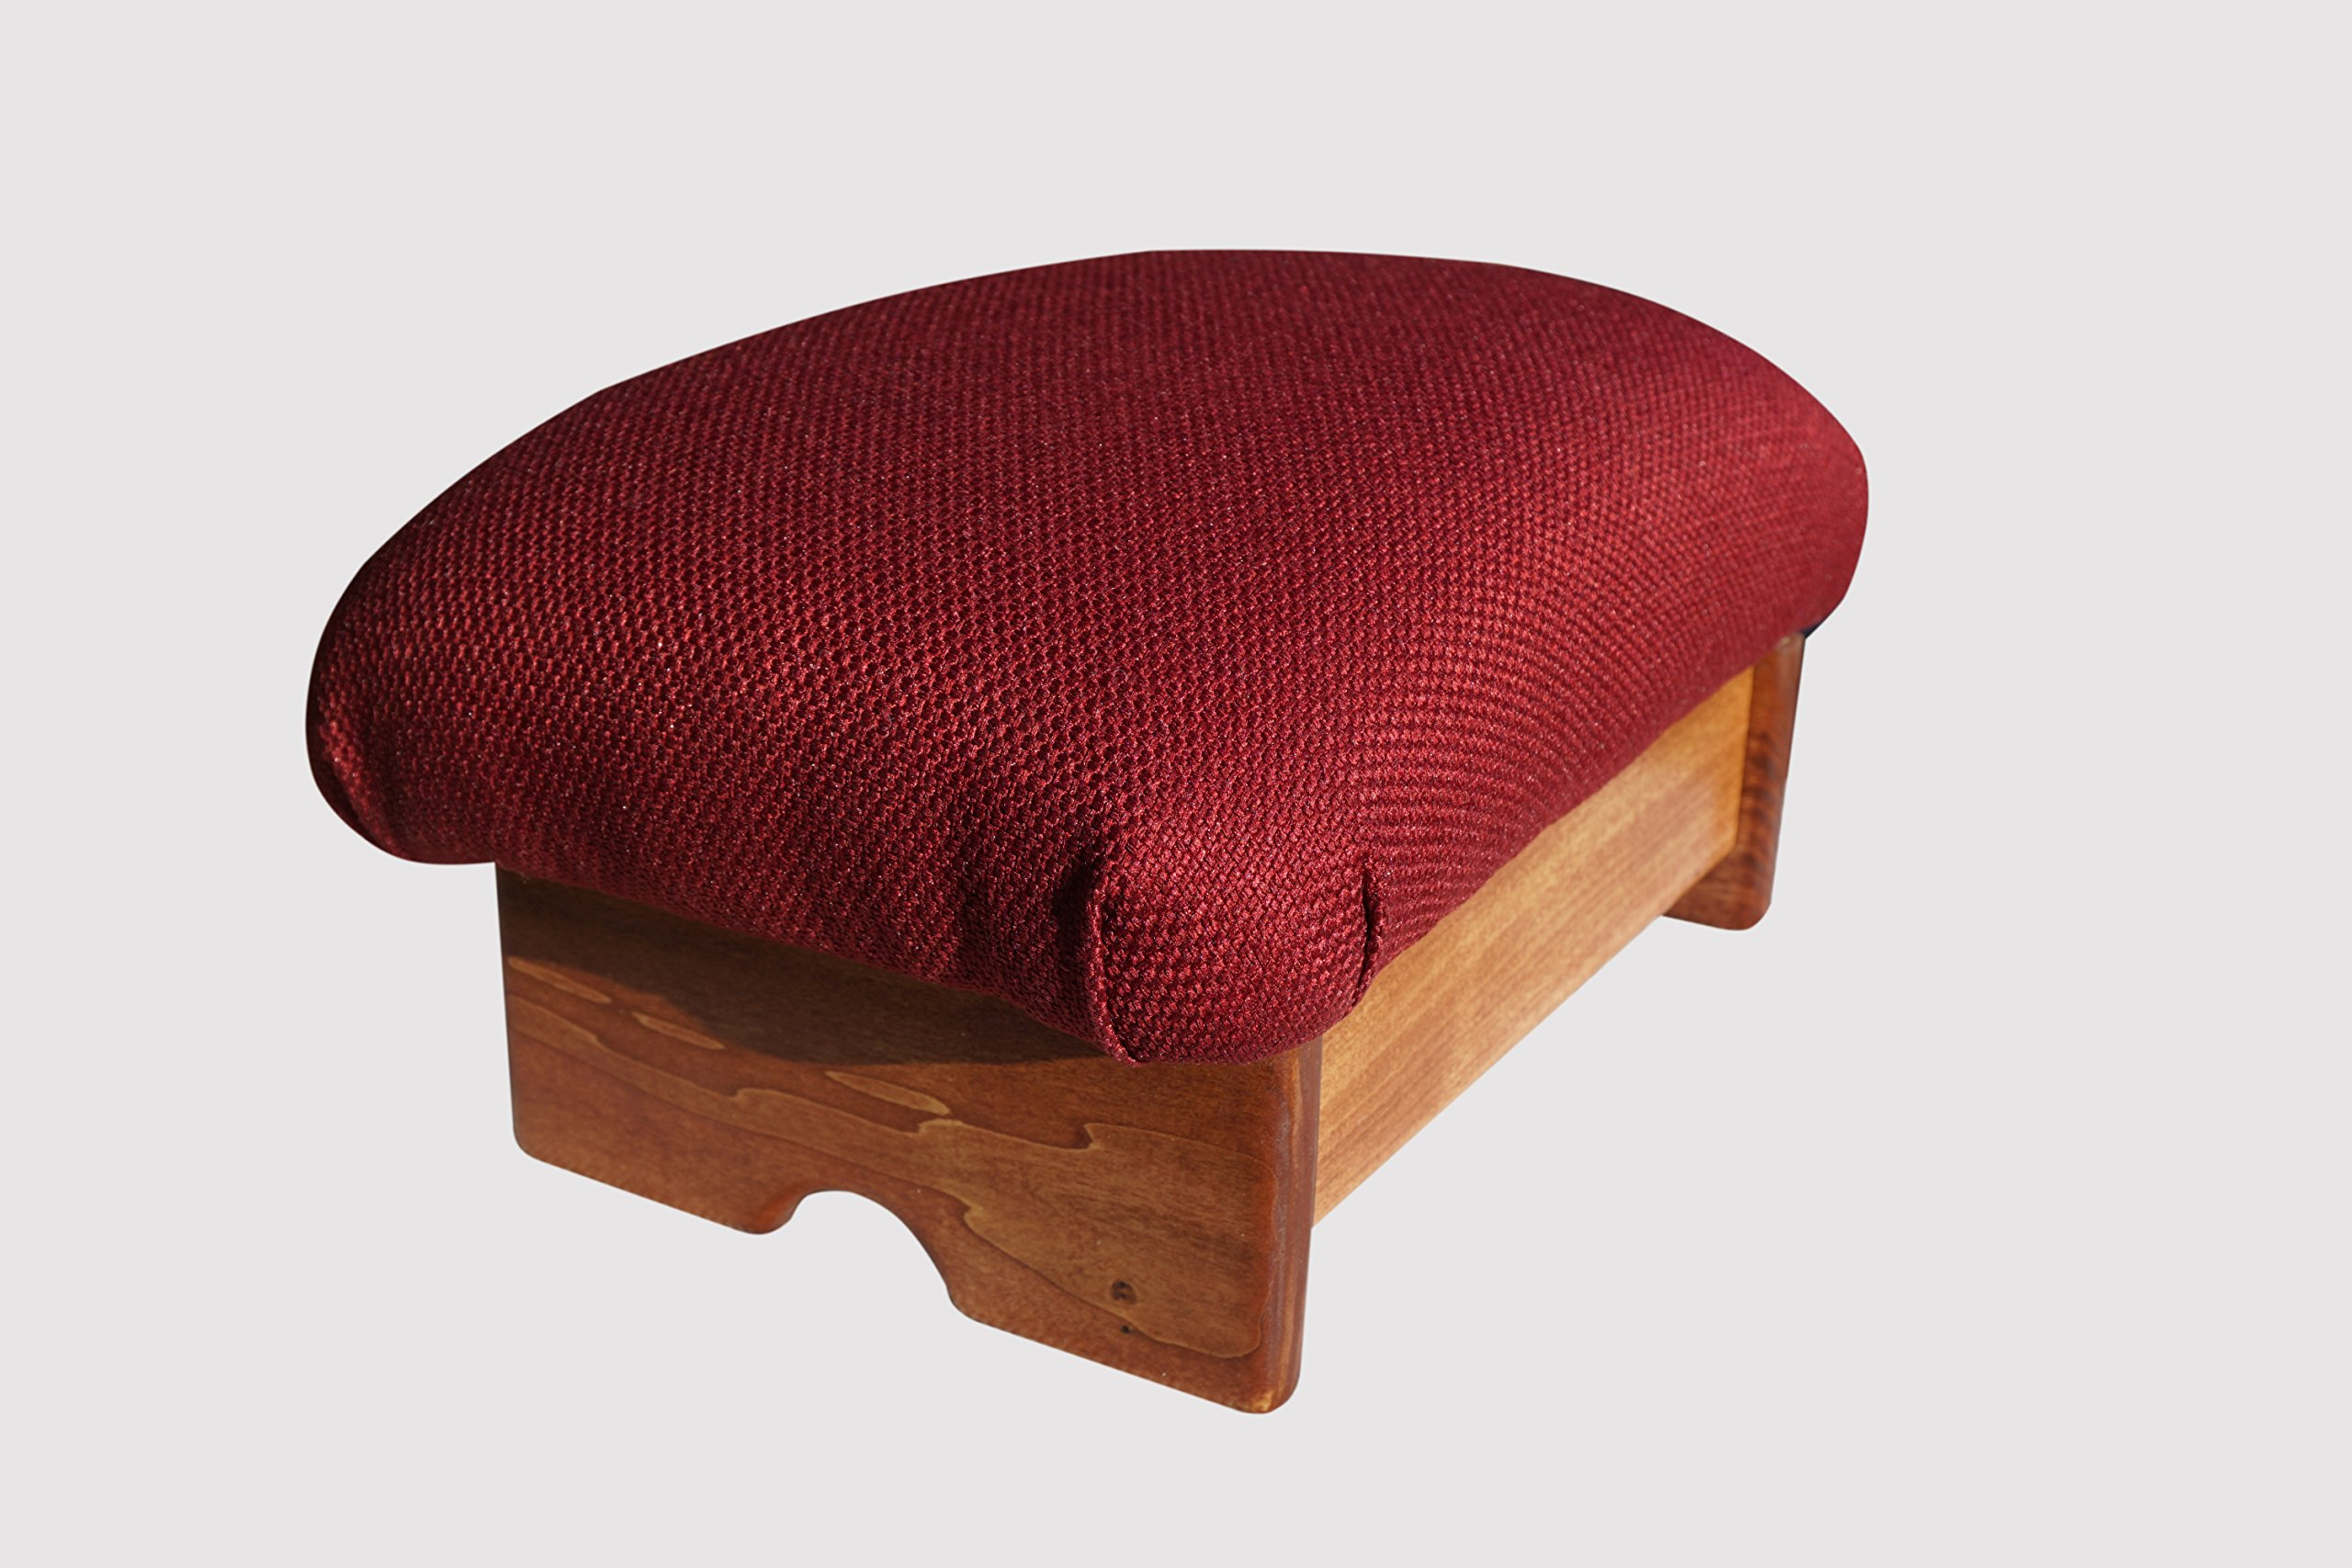 Padded Foot Stool, 7'' Tall, Red Mahogany Stain (Made in the USA) (Burgundy - 7'') by KR Ideas